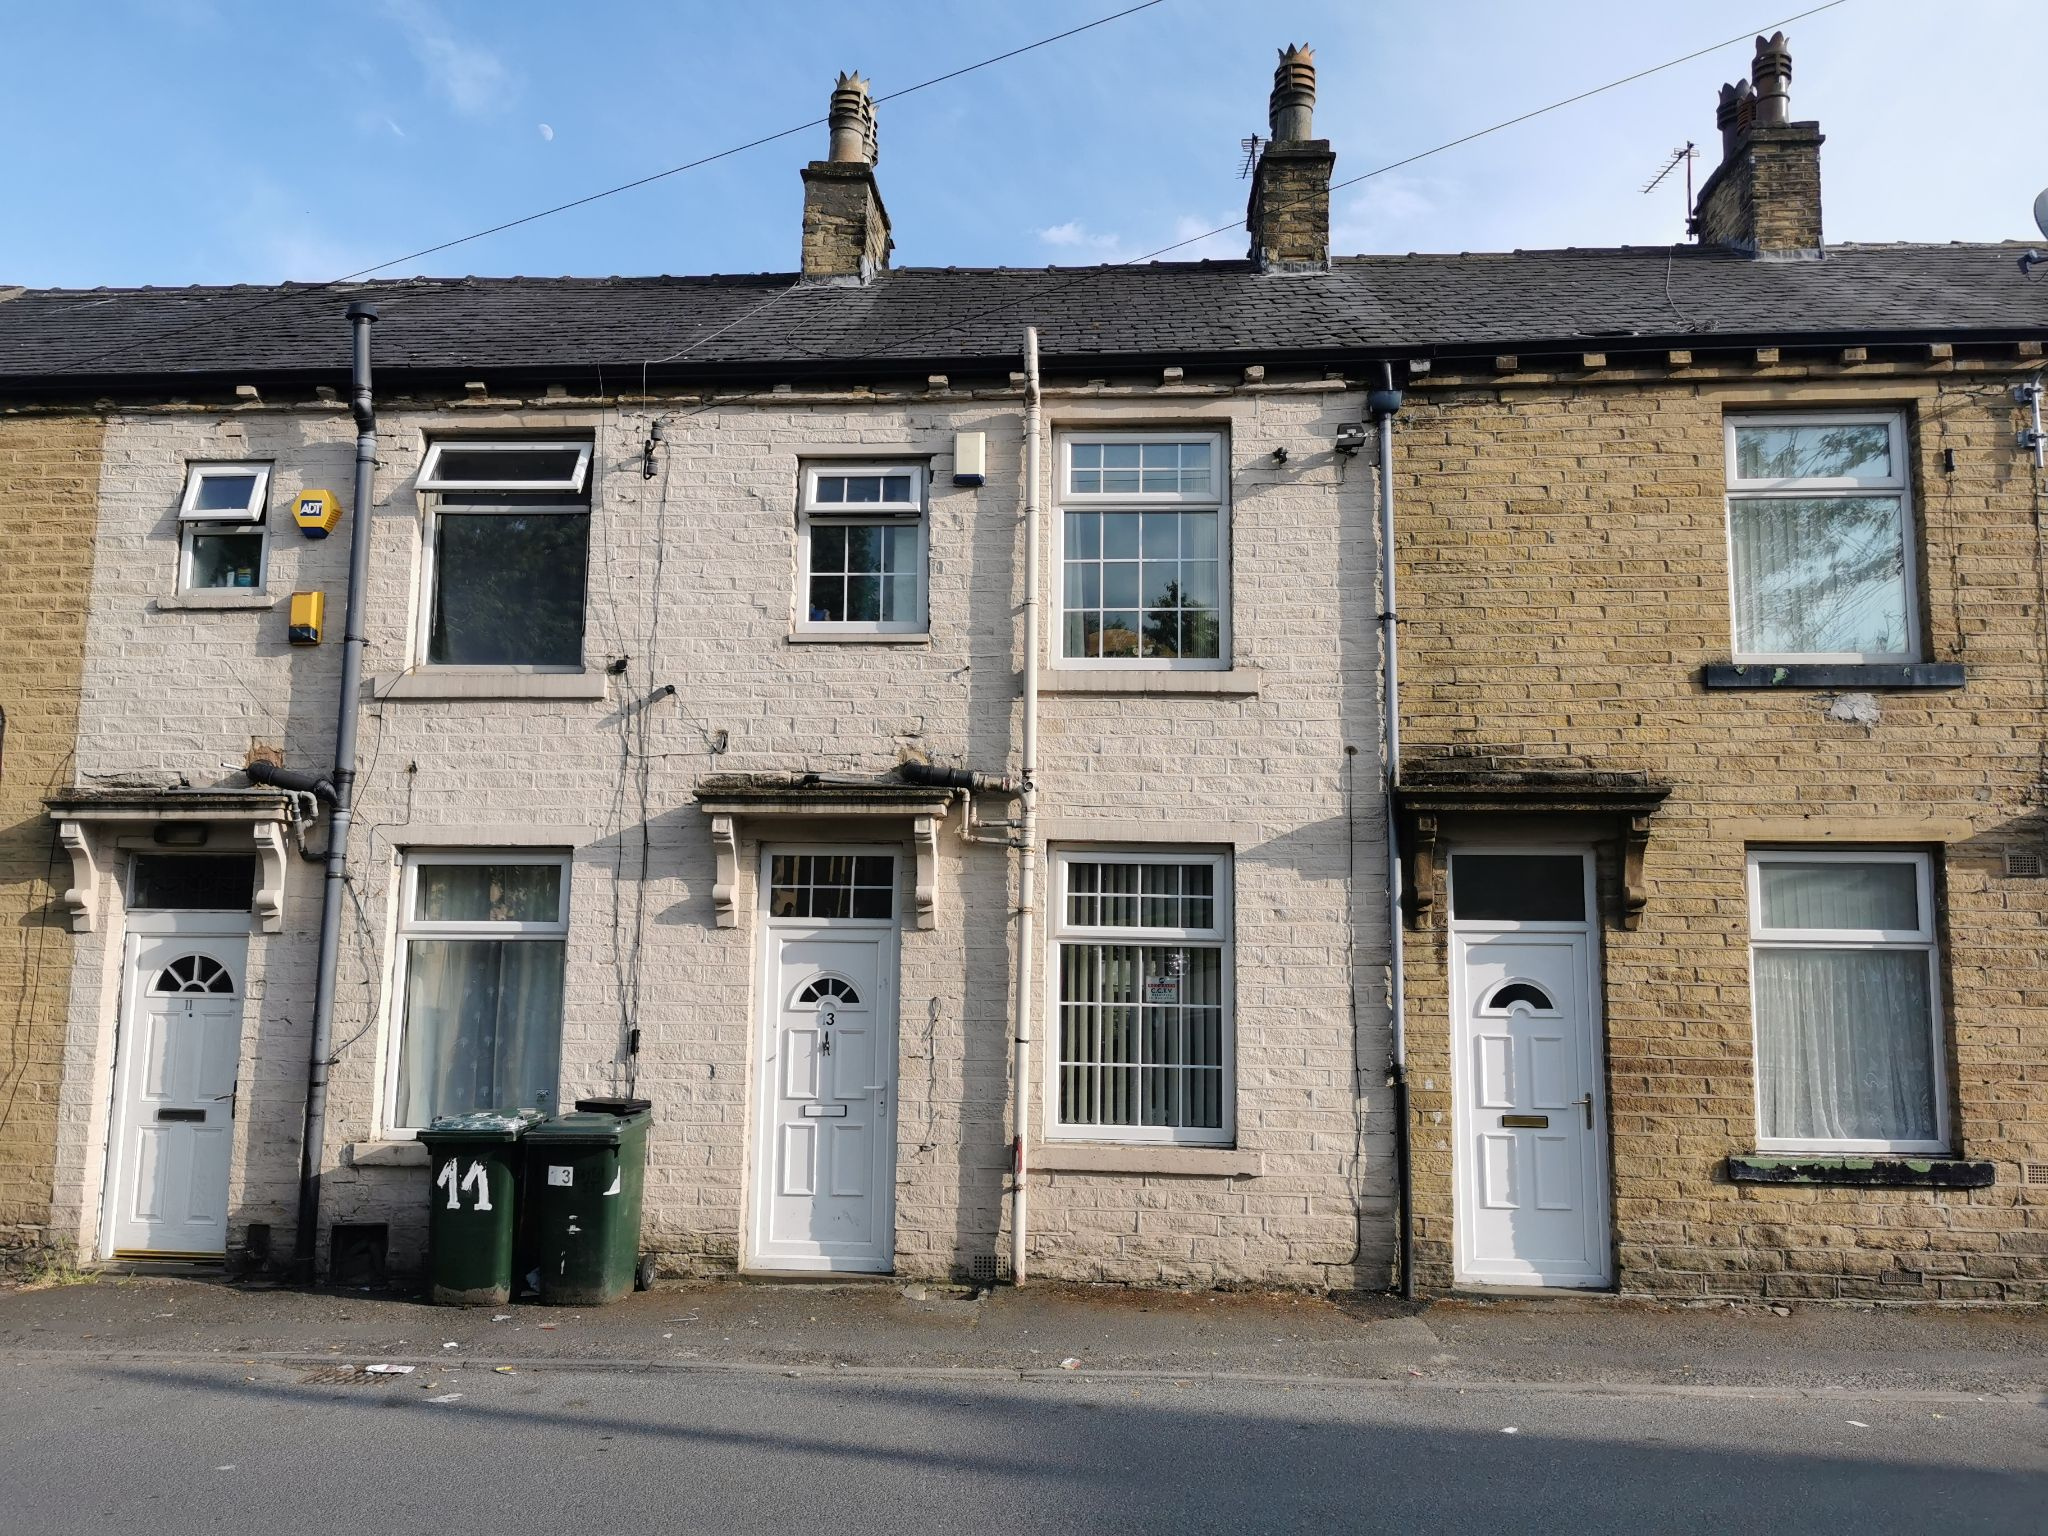 3 bedroom mid terraced house For Sale in Bradford - Photograph 1.